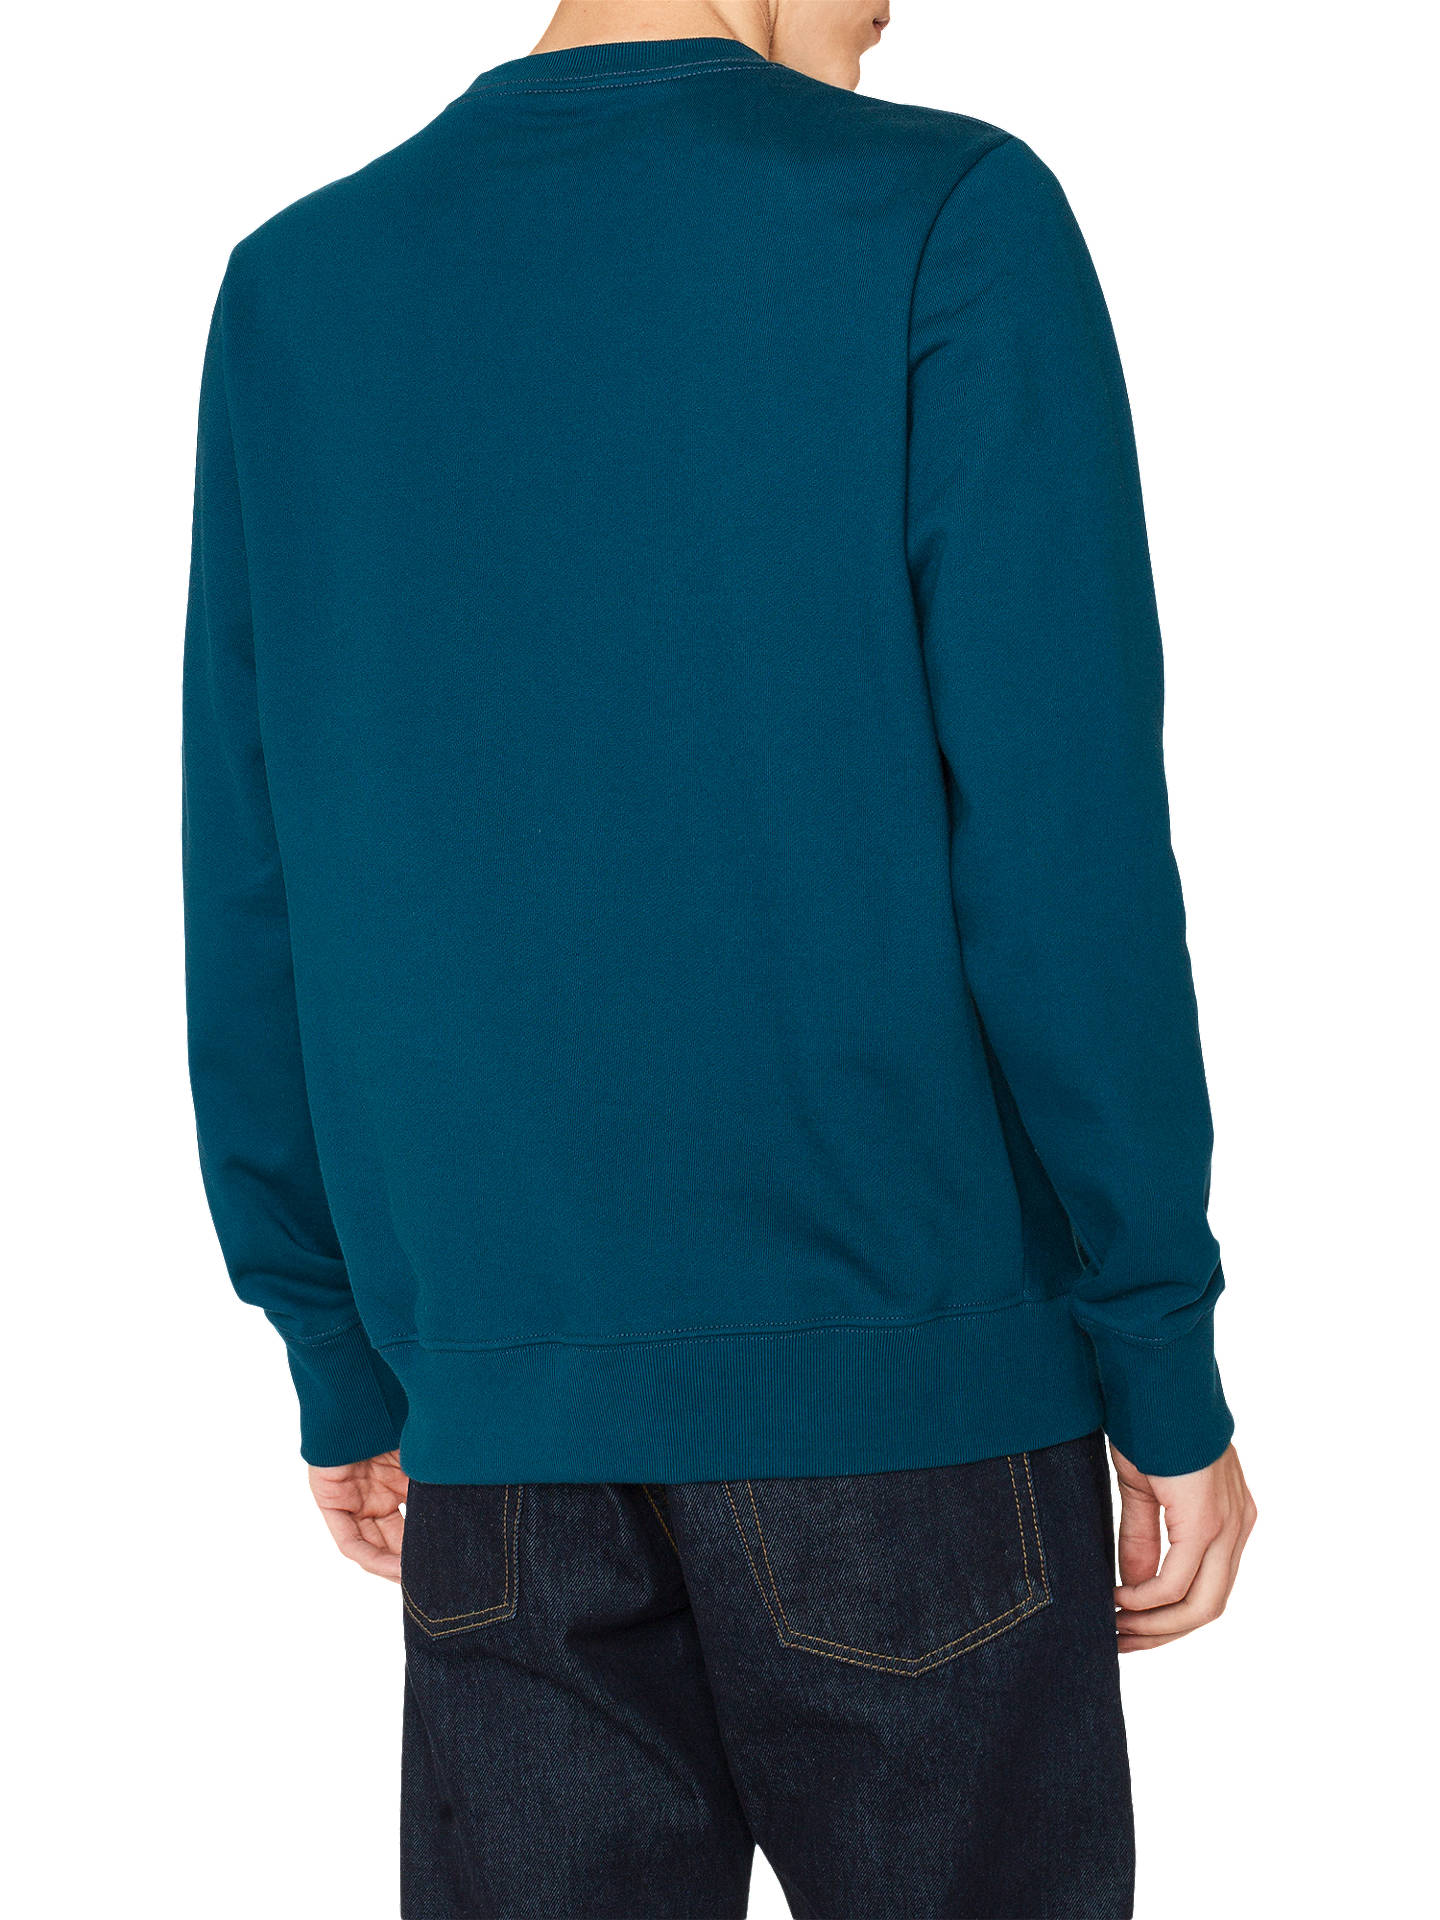 BuyPS Paul Smith Zebra Logo Sweatshirt, Teal, L Online at johnlewis.com